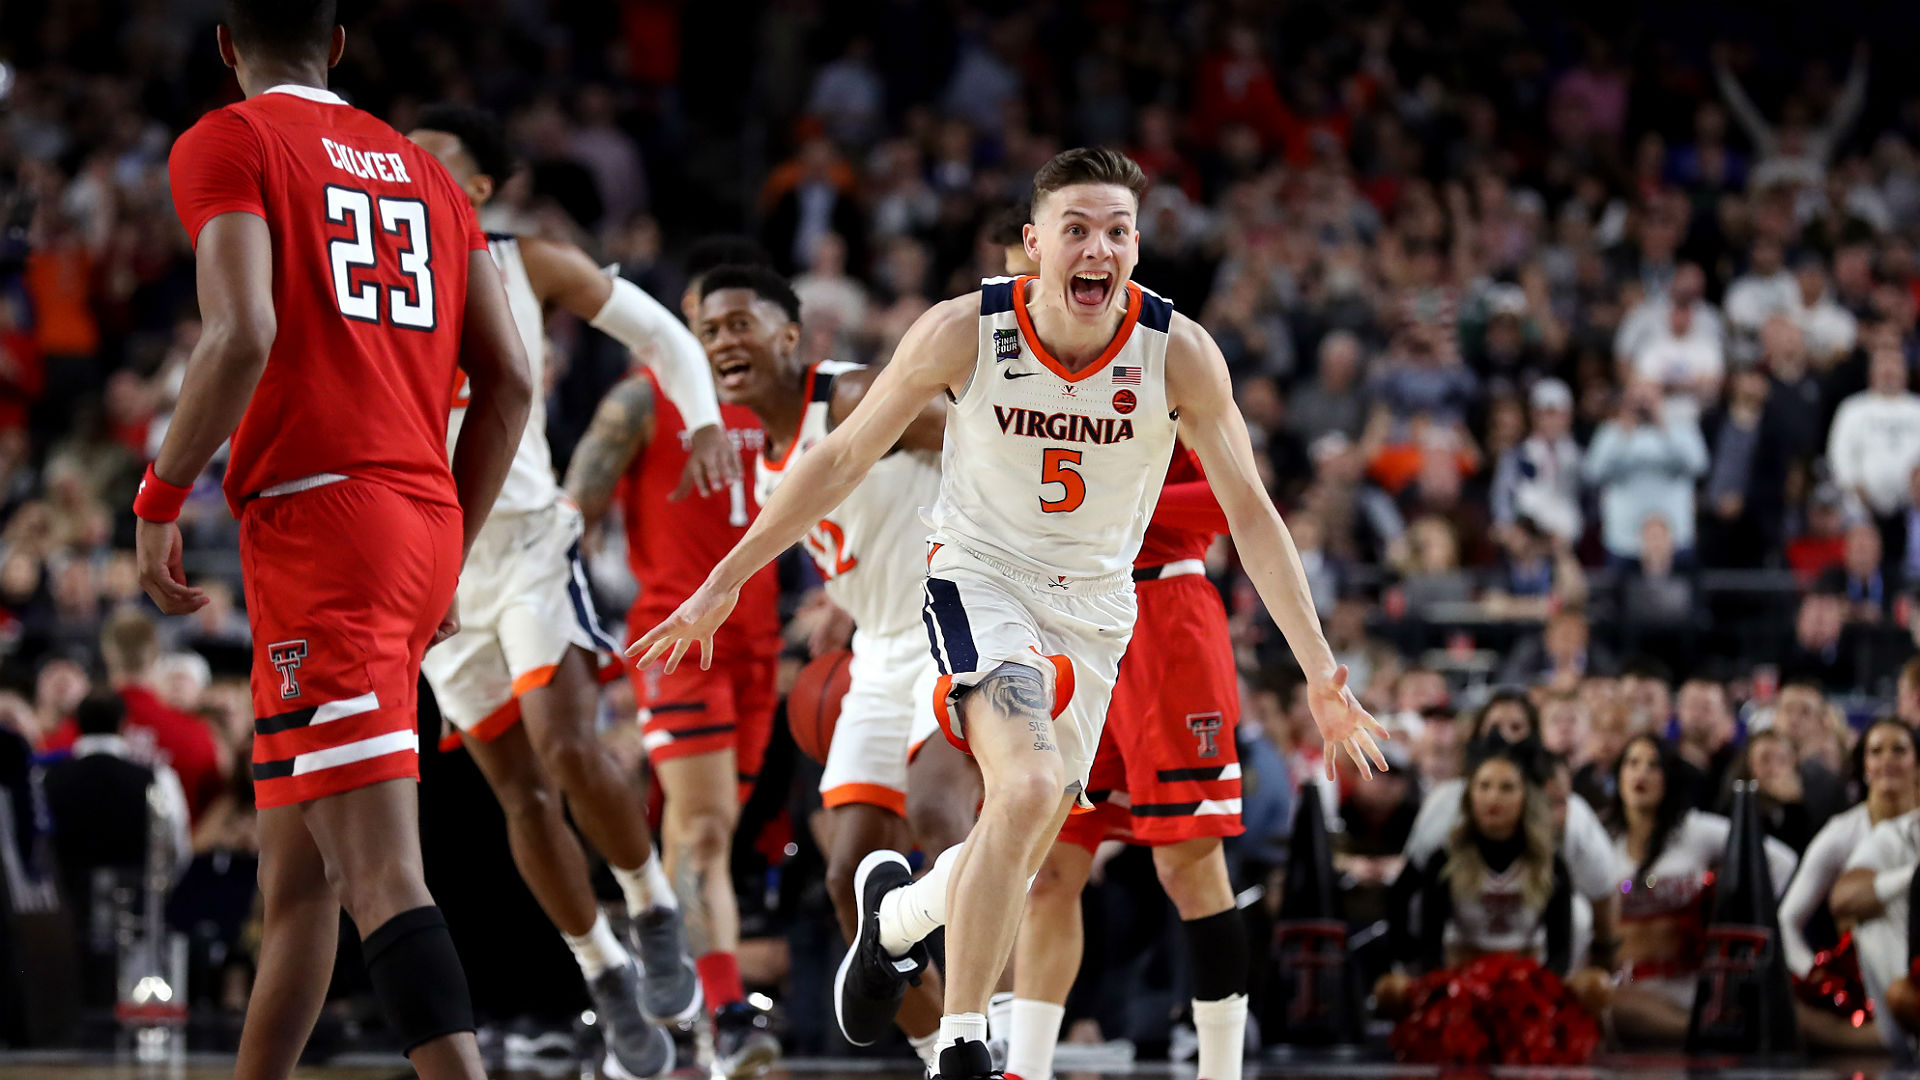 March Madness 2019: UMBC Tweets Congrats To Virginia On